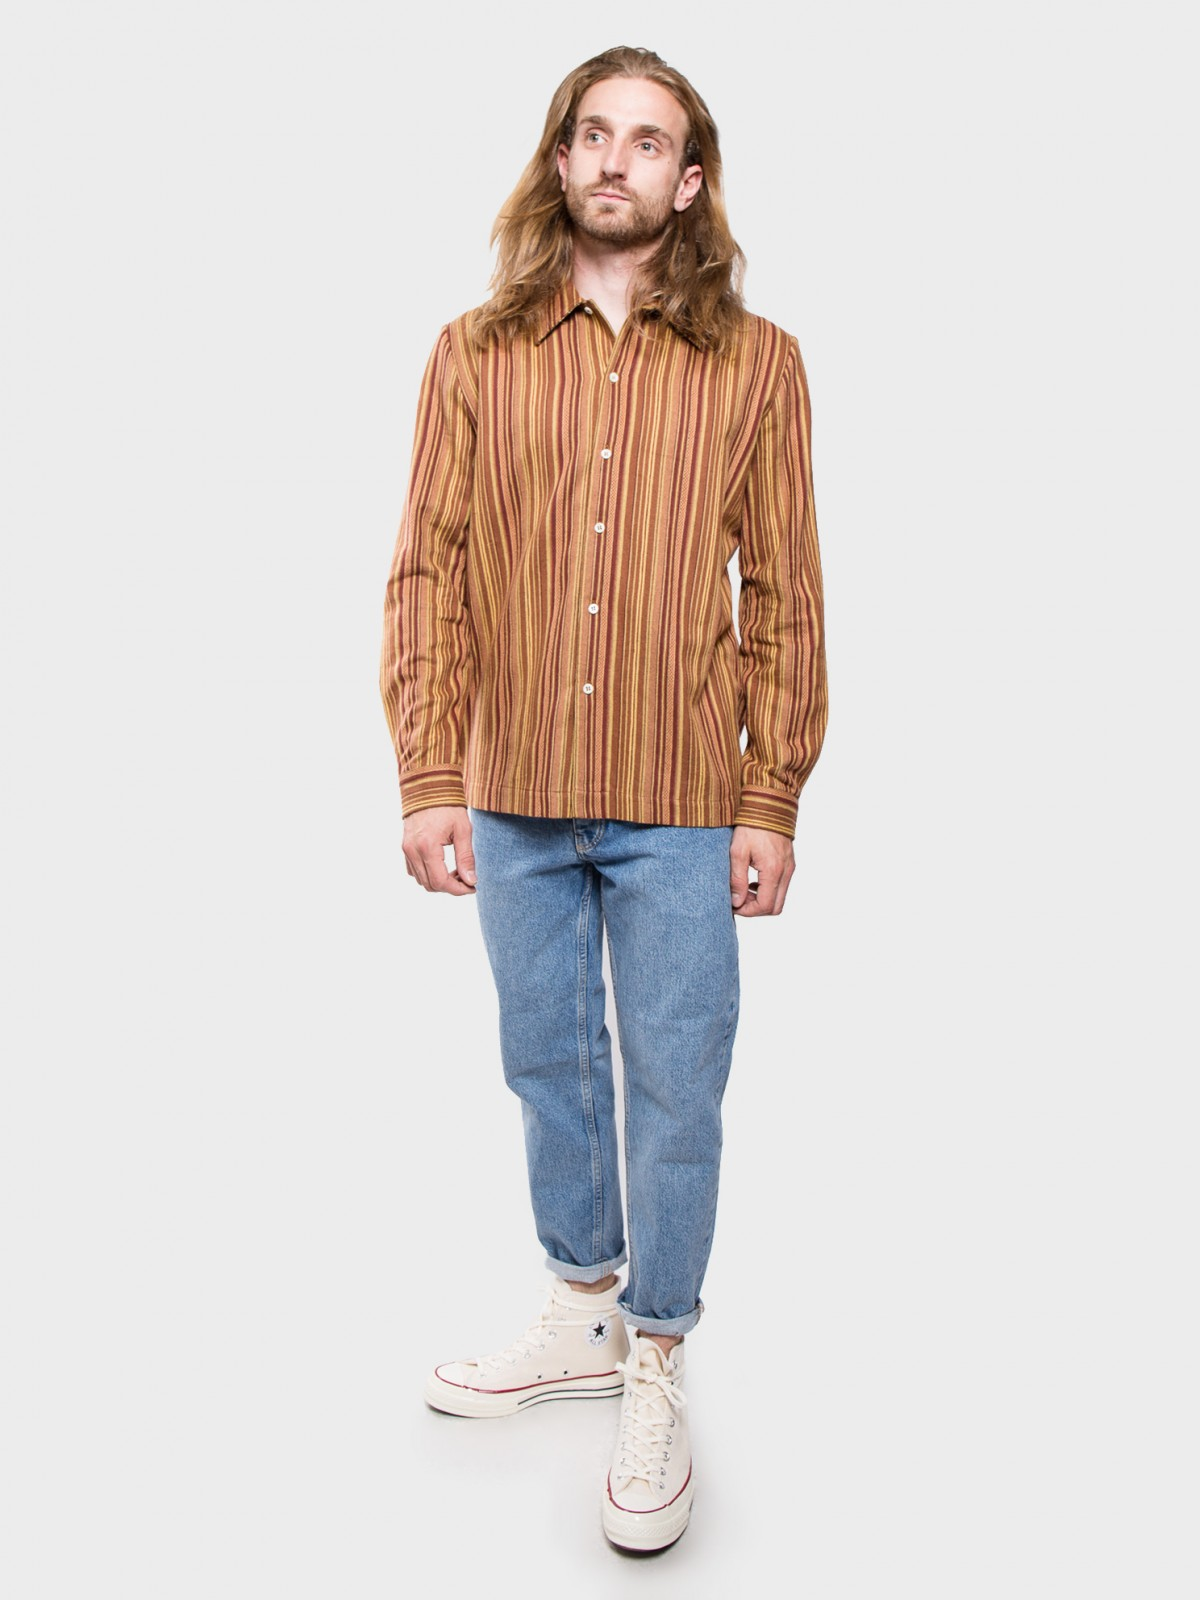 Séfr Ripley Shirt Stripe in Brown Stripes